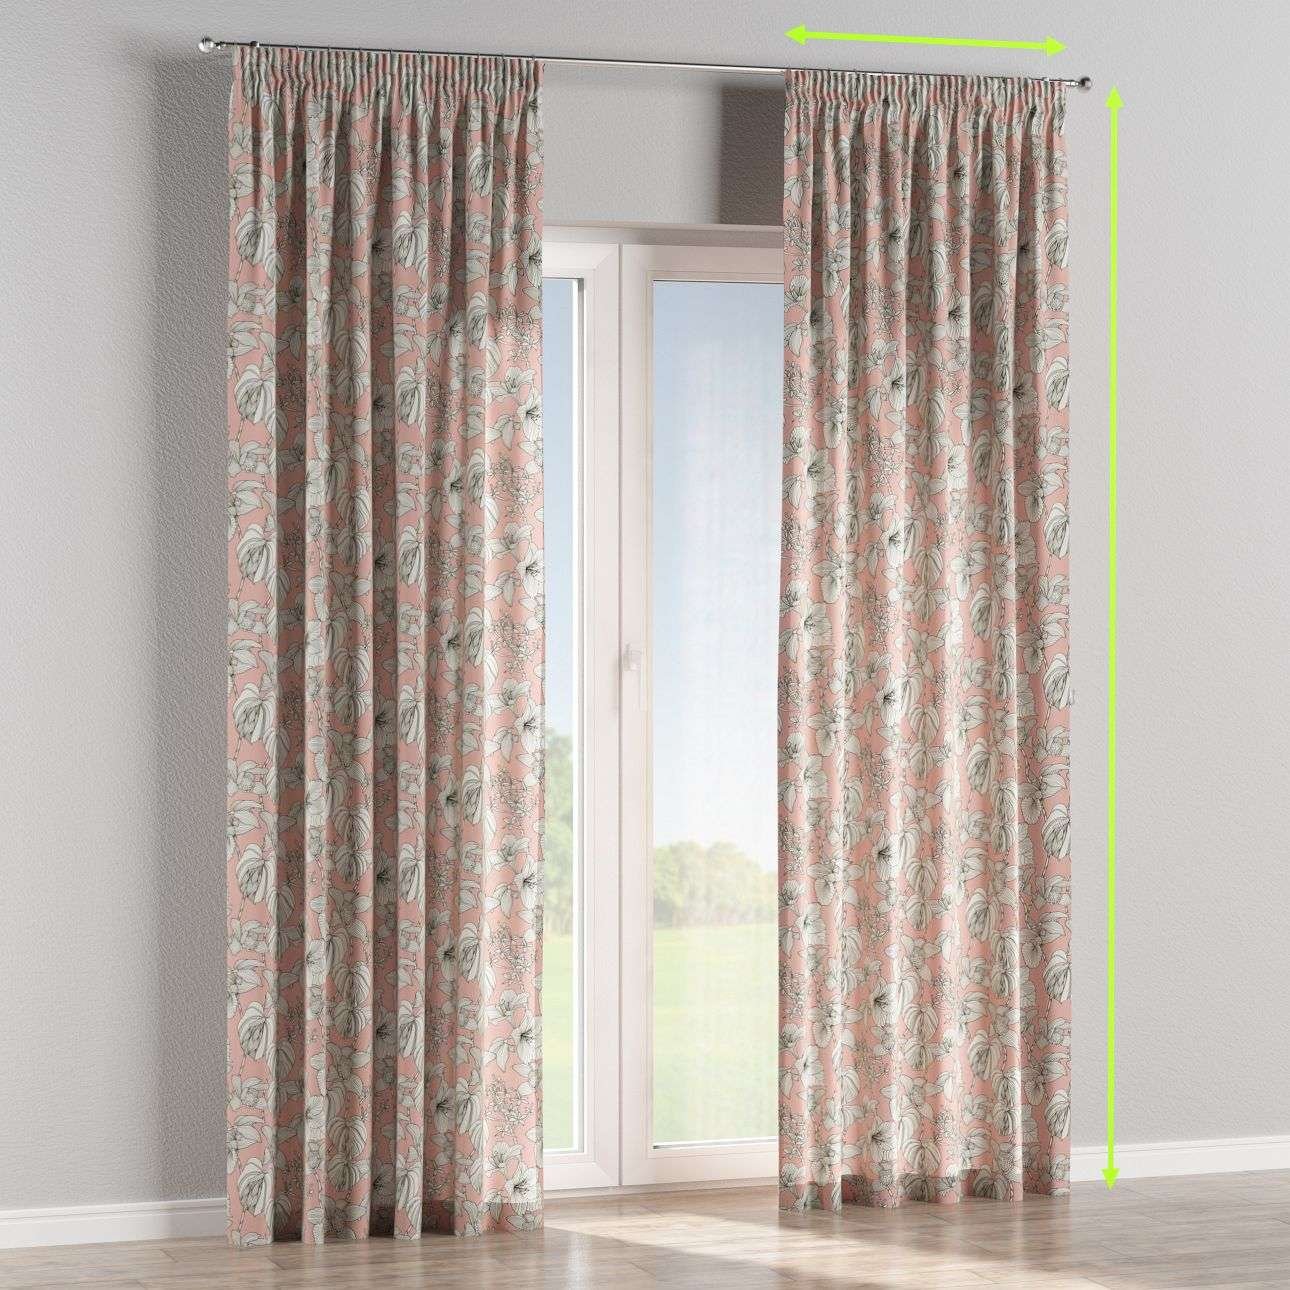 Pencil pleat curtain in collection Brooklyn, fabric: 137-74